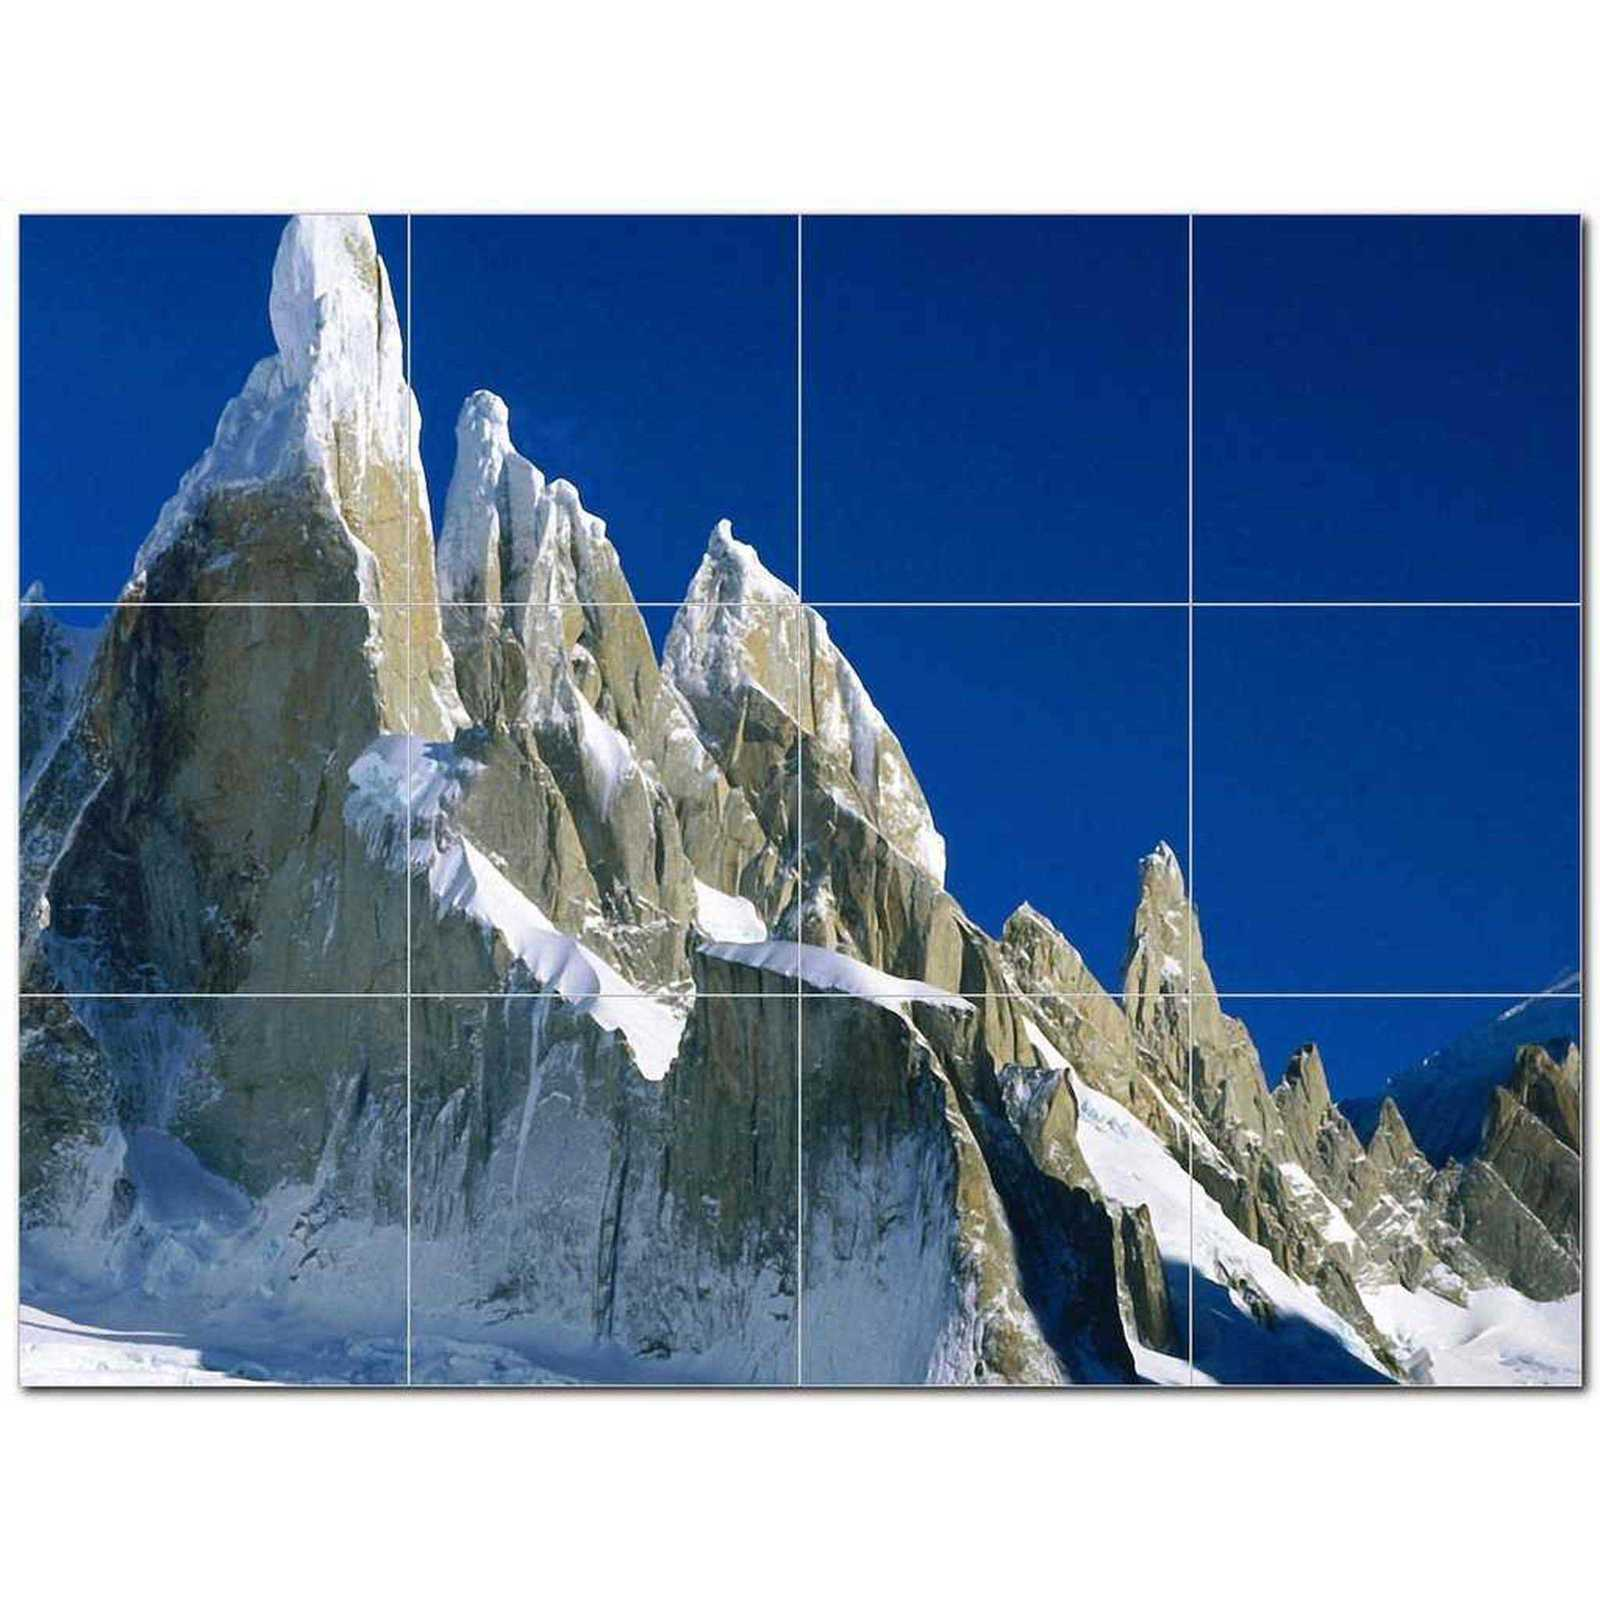 Primary image for Mountain Scene Ceramic Tile Mural Kitchen Backsplash Bathroom Shower BAZ405633